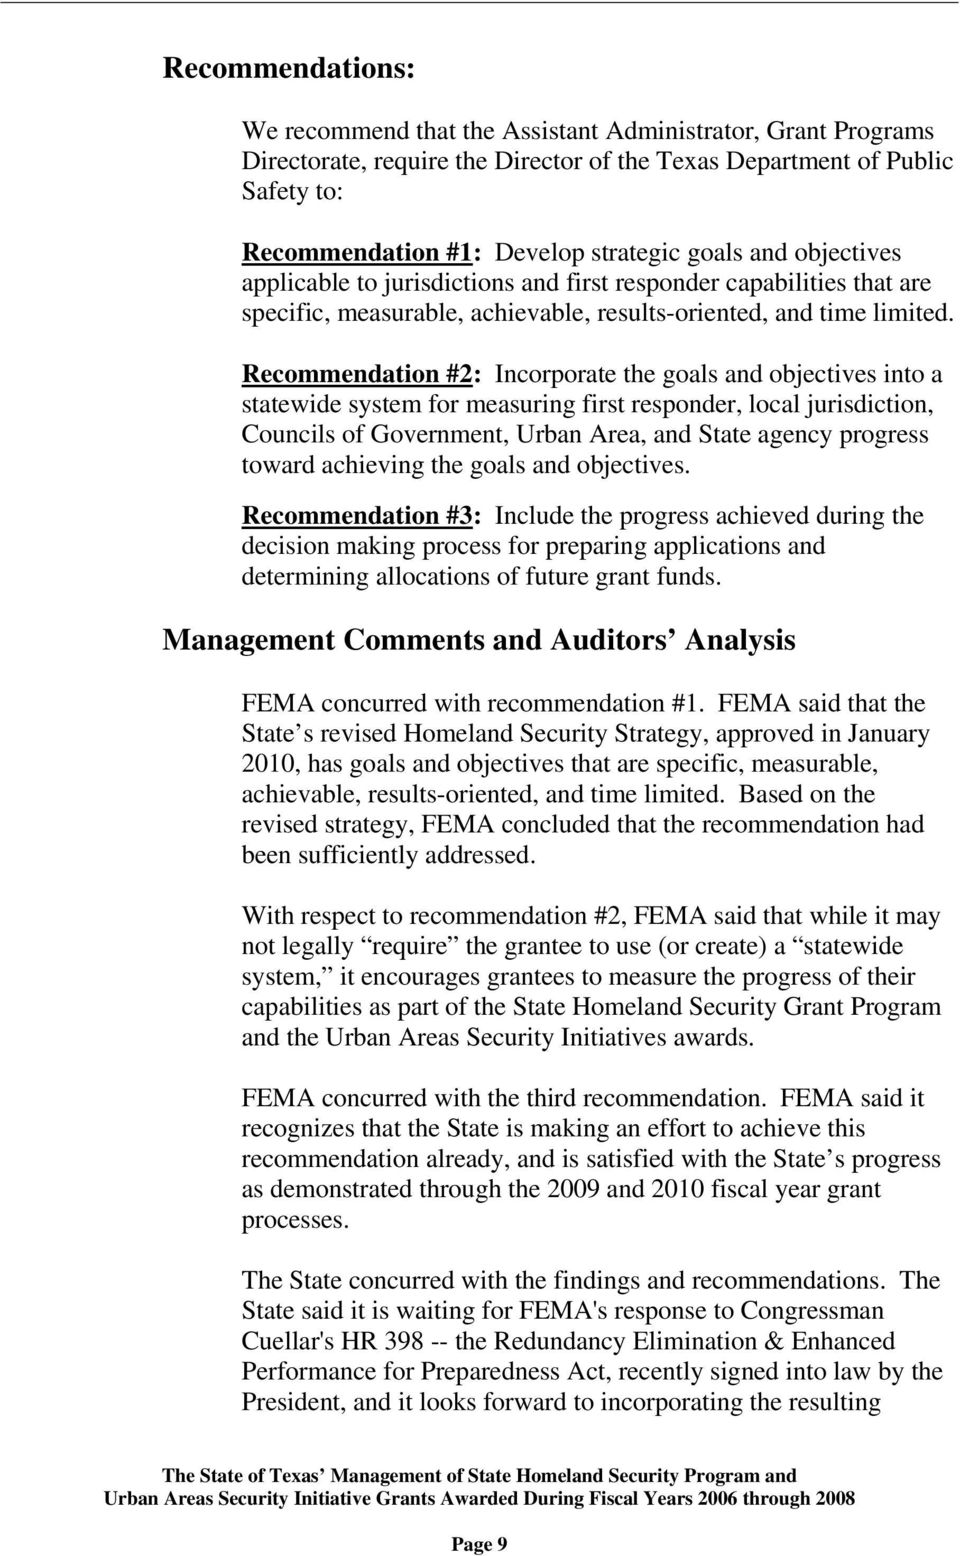 Recommendation #2: Incorporate the goals and objectives into a statewide system for measuring first responder, local jurisdiction, Councils of Government, Urban Area, and State agency progress toward